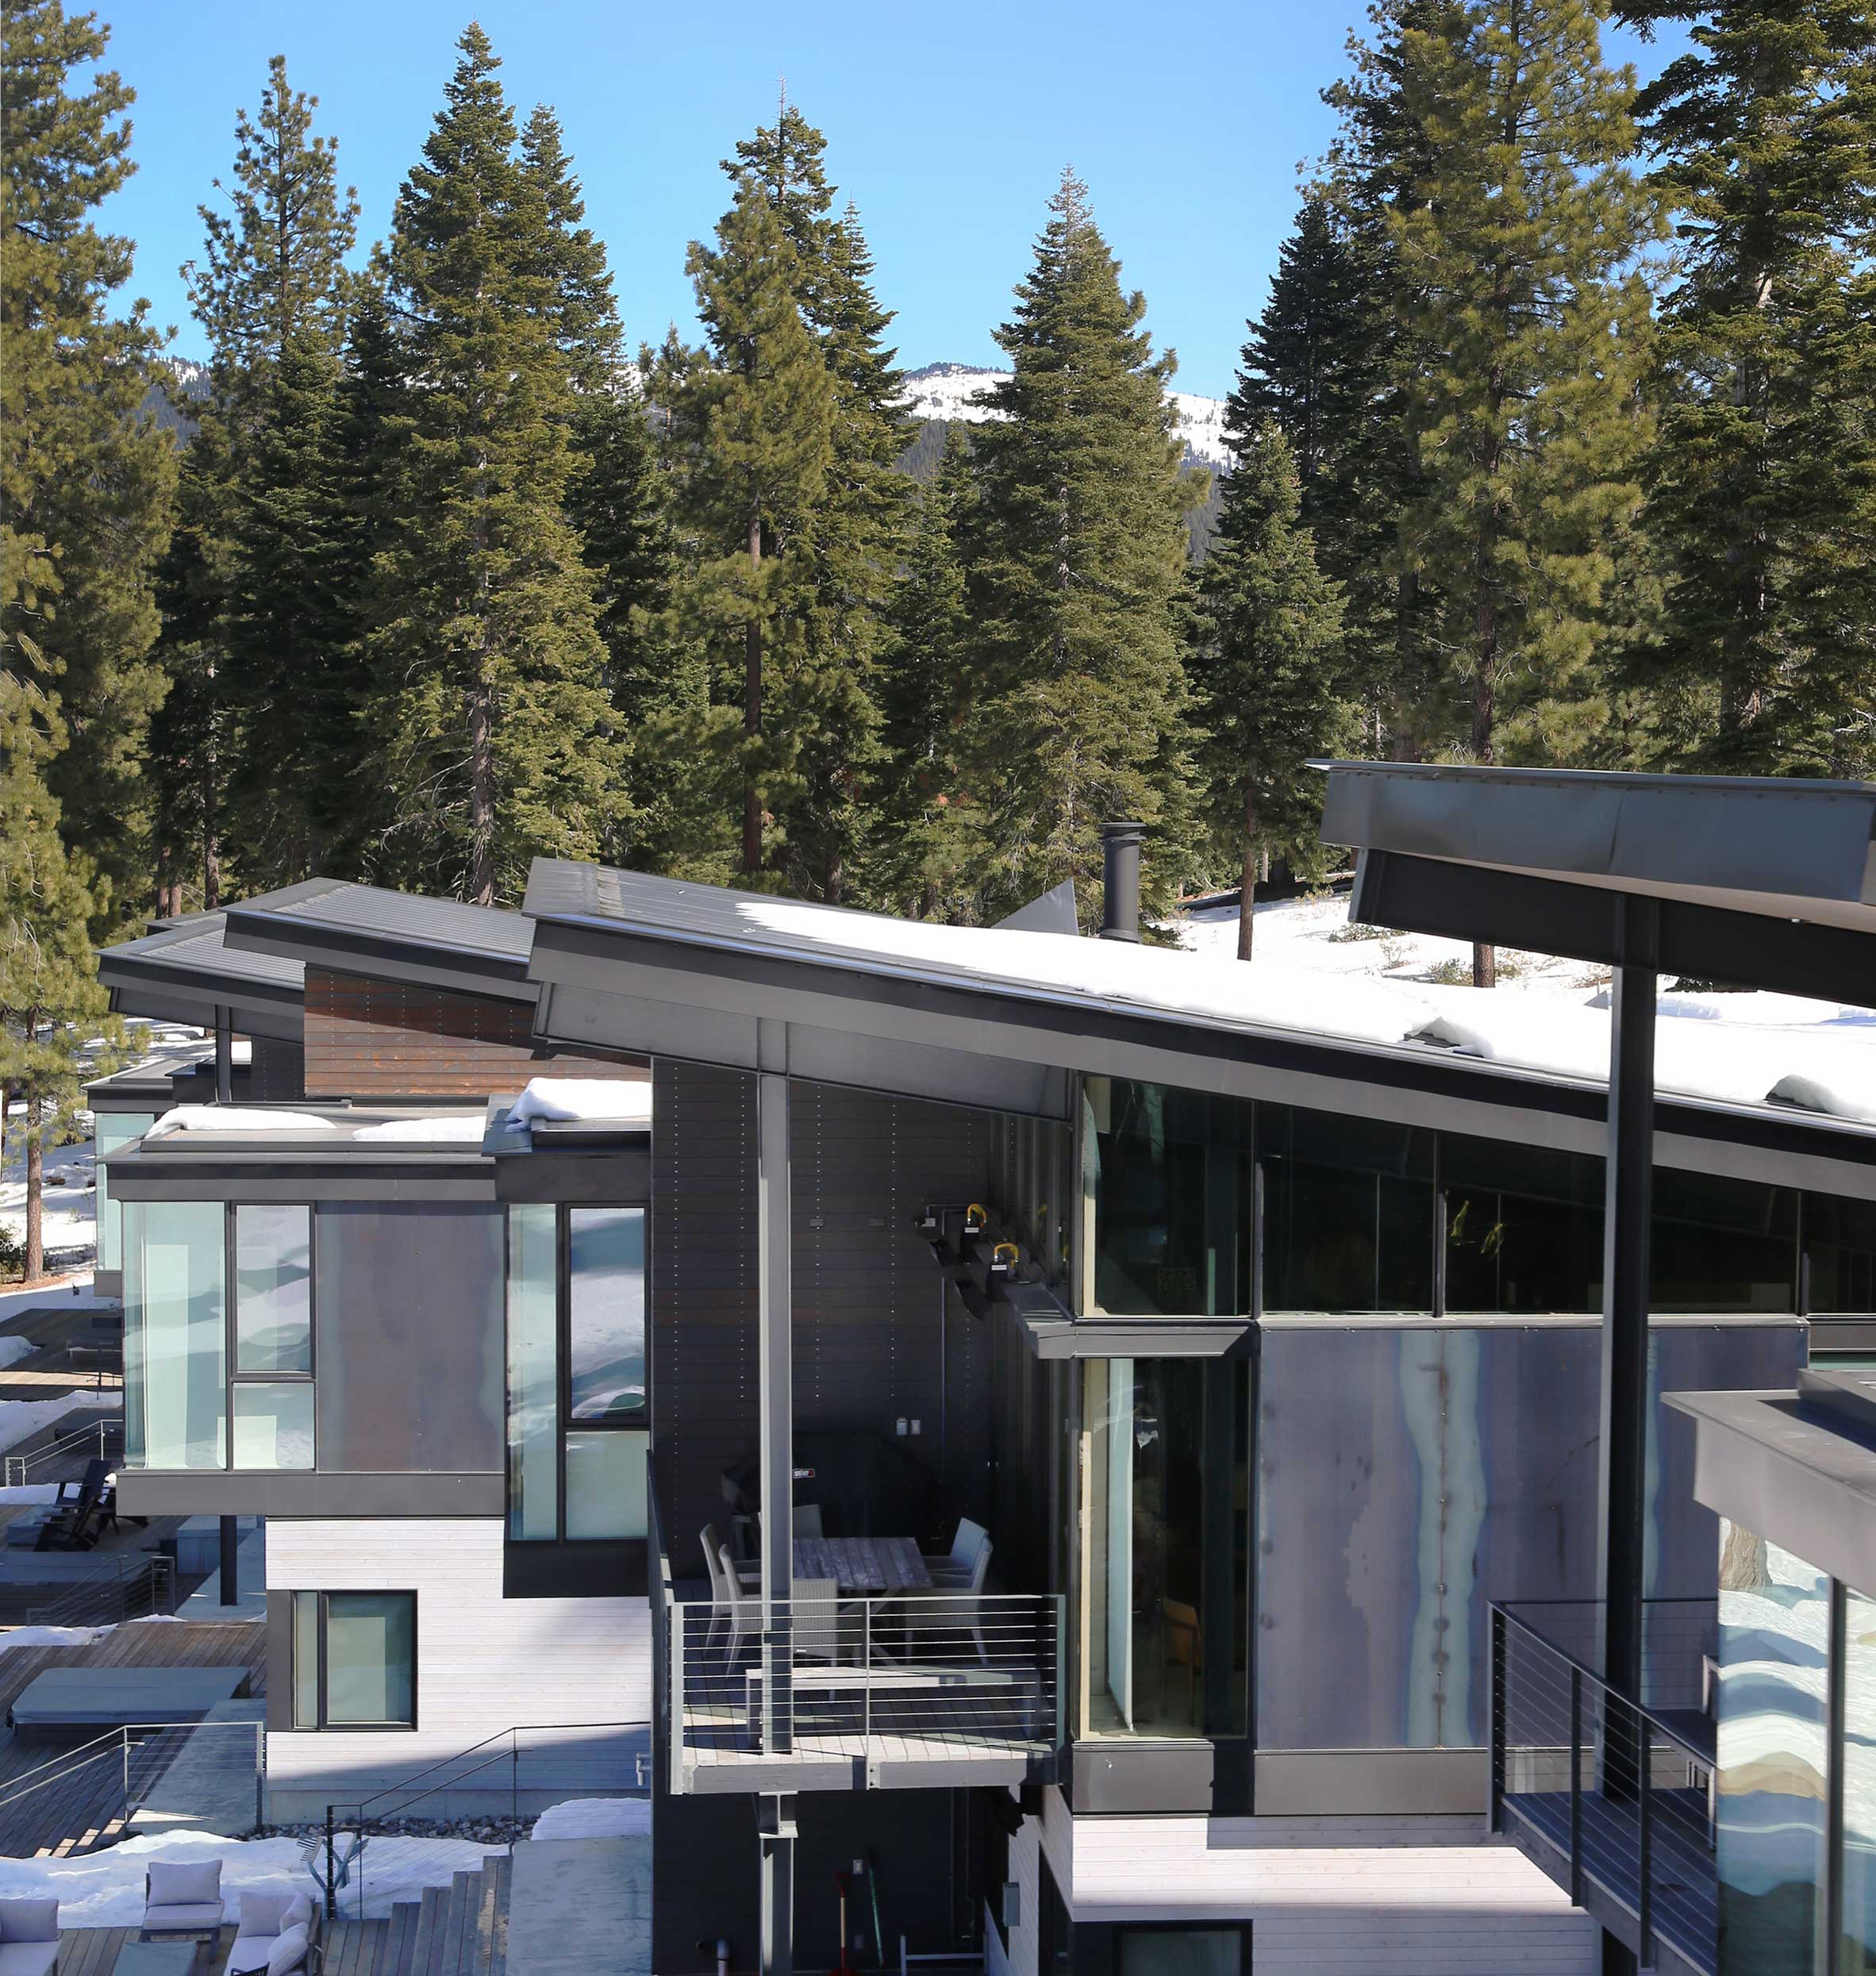 Northstar Townhomes at Ski Resort: Residential Structural Engineering of roofs accommodate snowload in Truckee Tahoe Region California